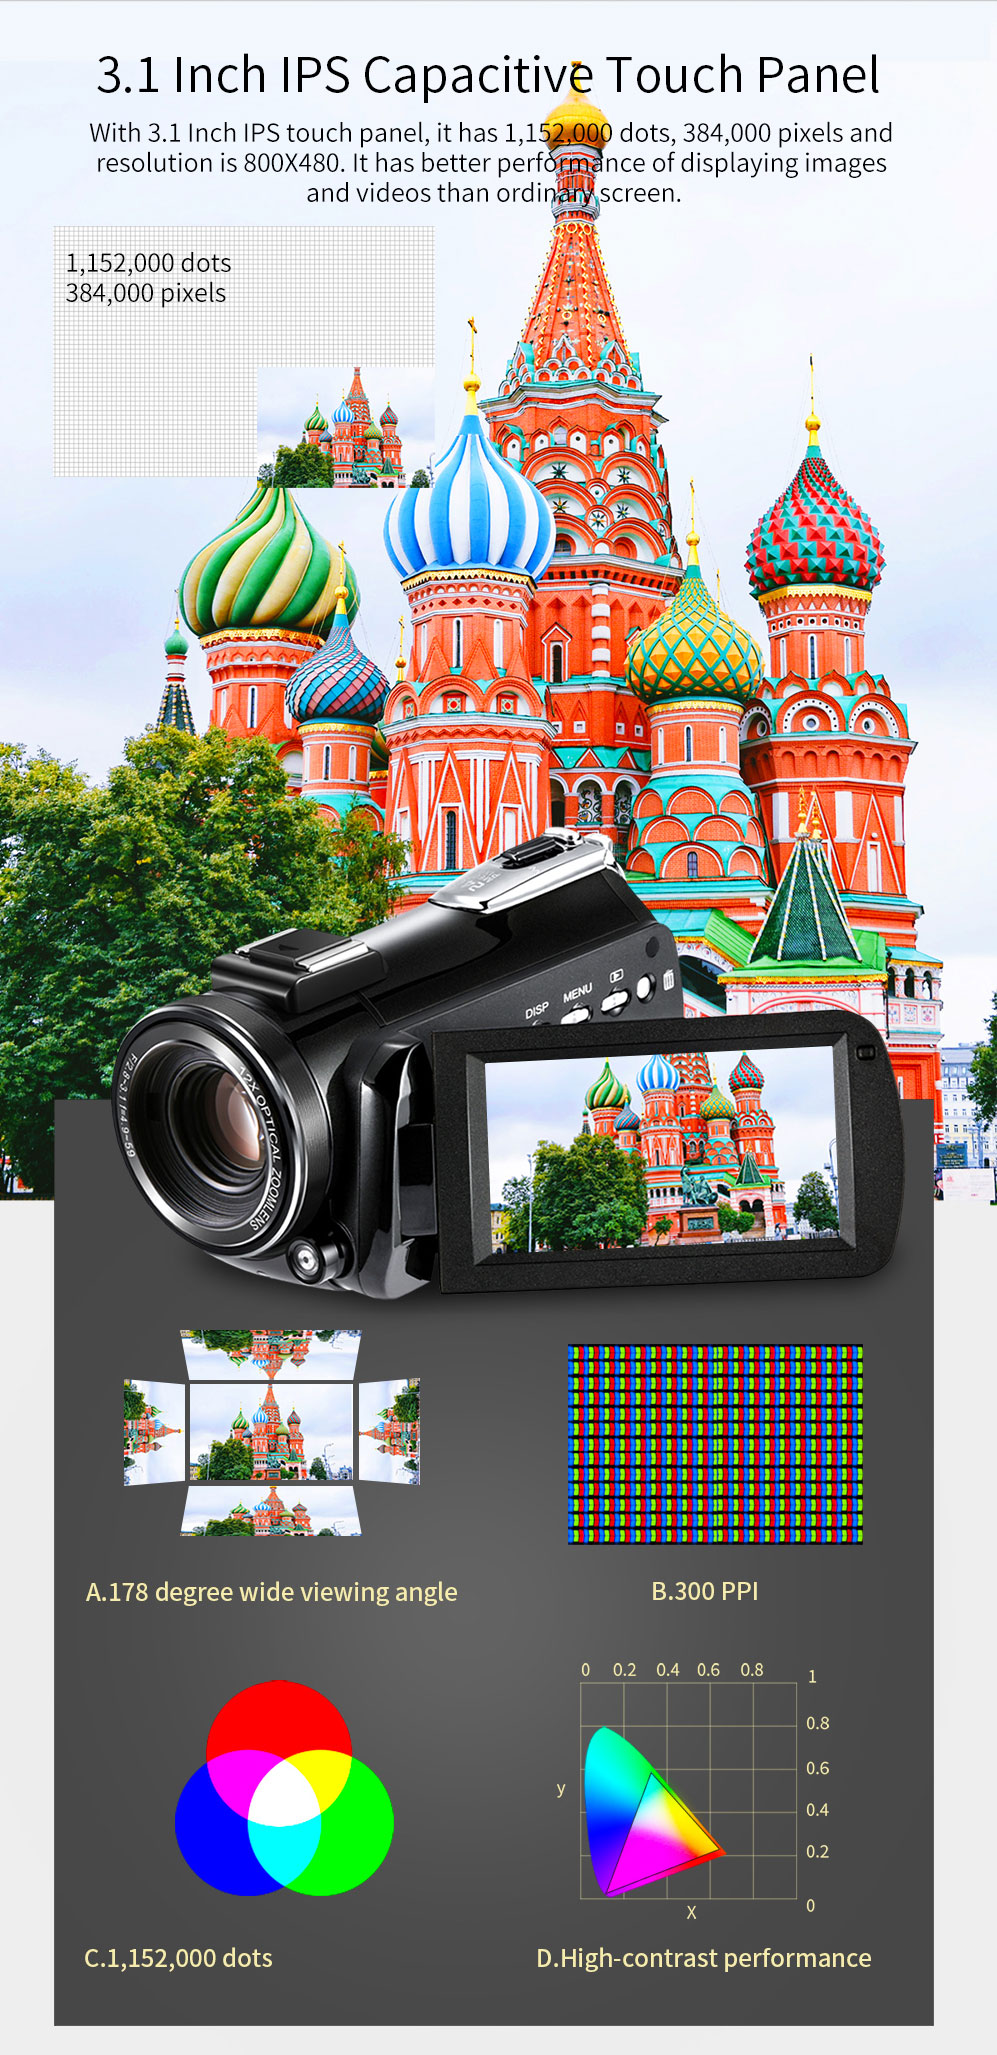 4k WIFI Digital Video Camcorder with 3.0'' Touch Display/12 x Optical Zoom Professional Home Use Digital Camcorder 3